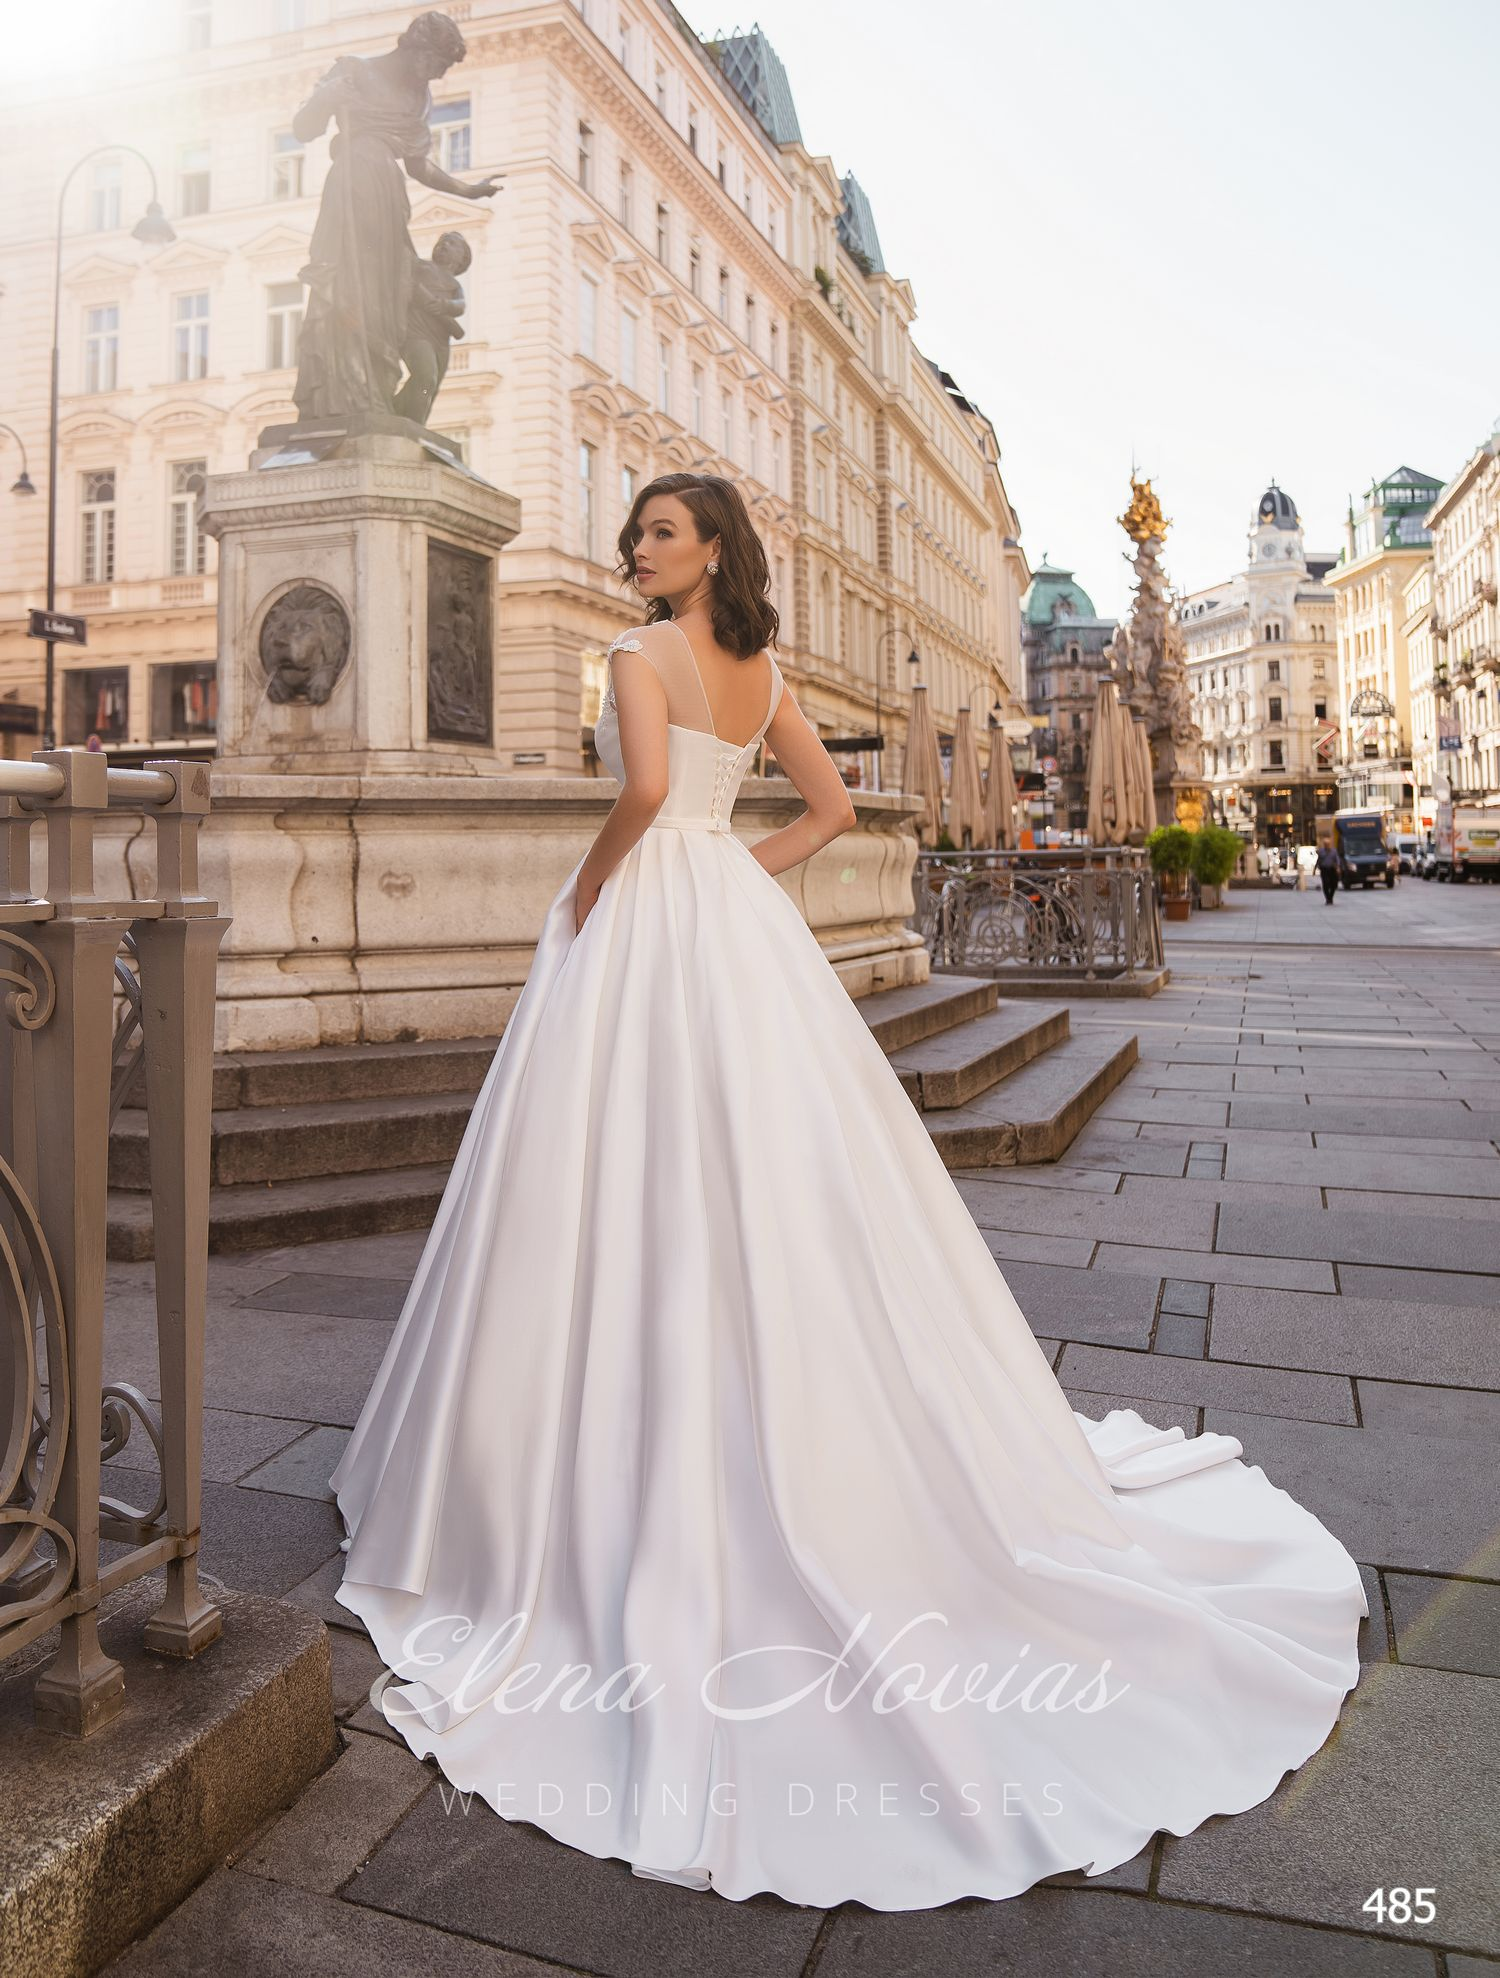 Wedding dresses 485 2